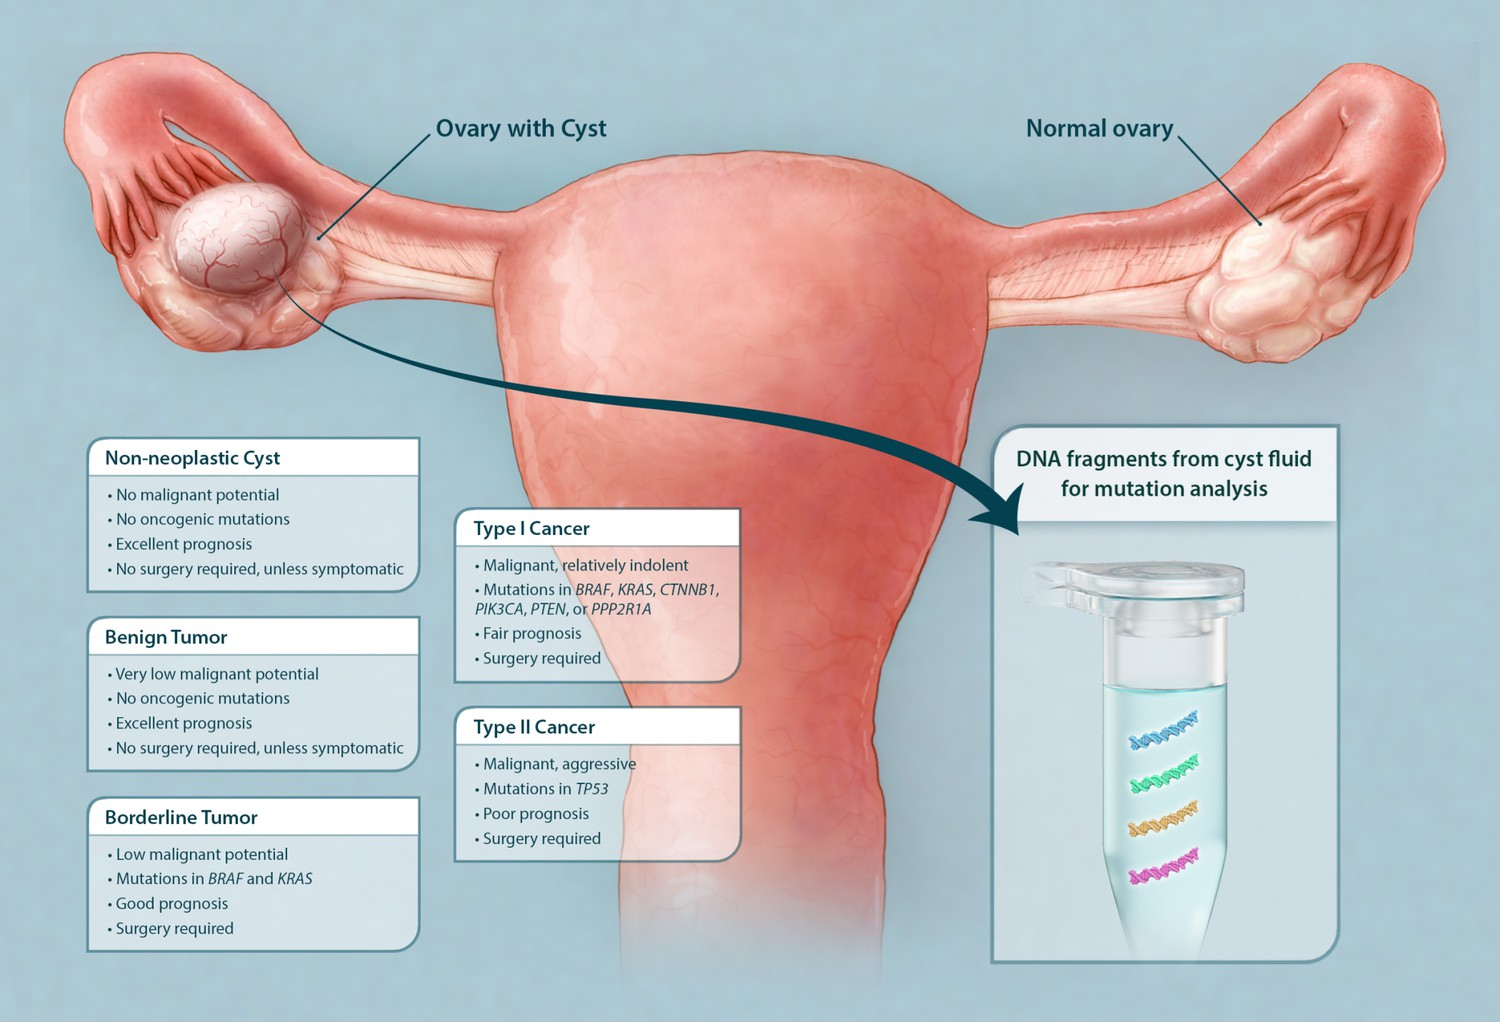 Ovarian cancer or cysts. Ovarian cancer from cyst